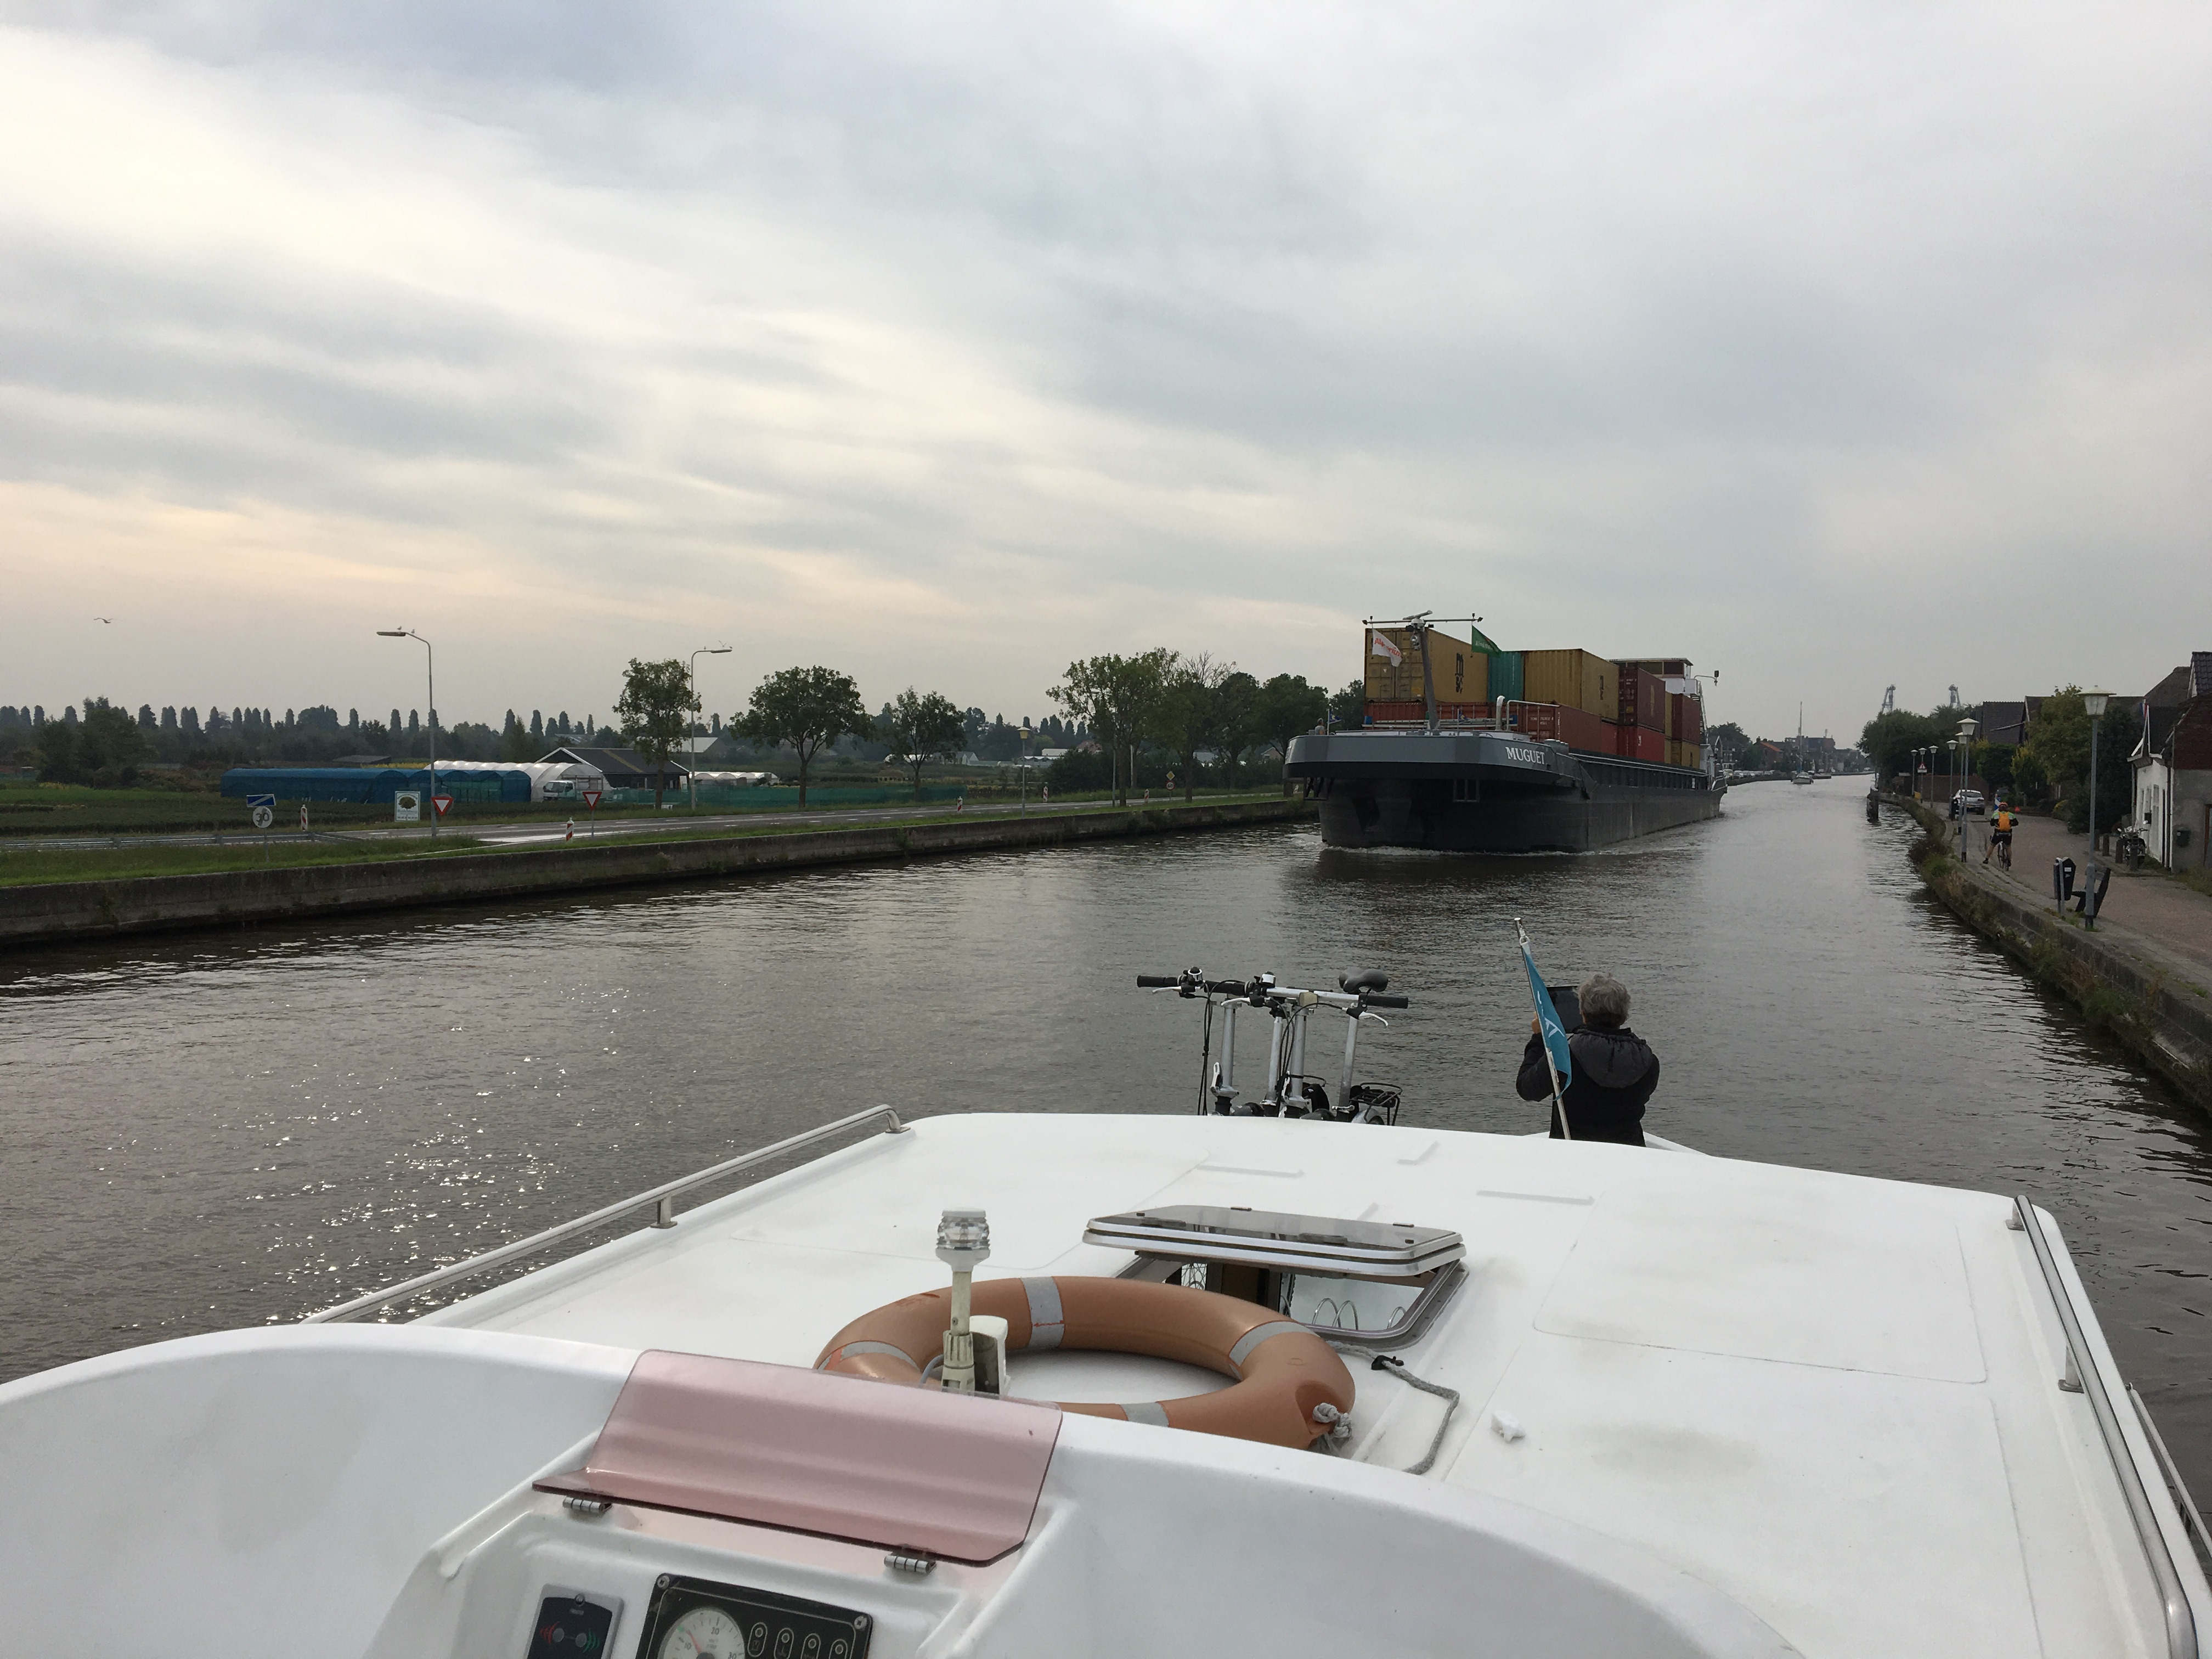 container barge on canal - Gamesforlanguage.com